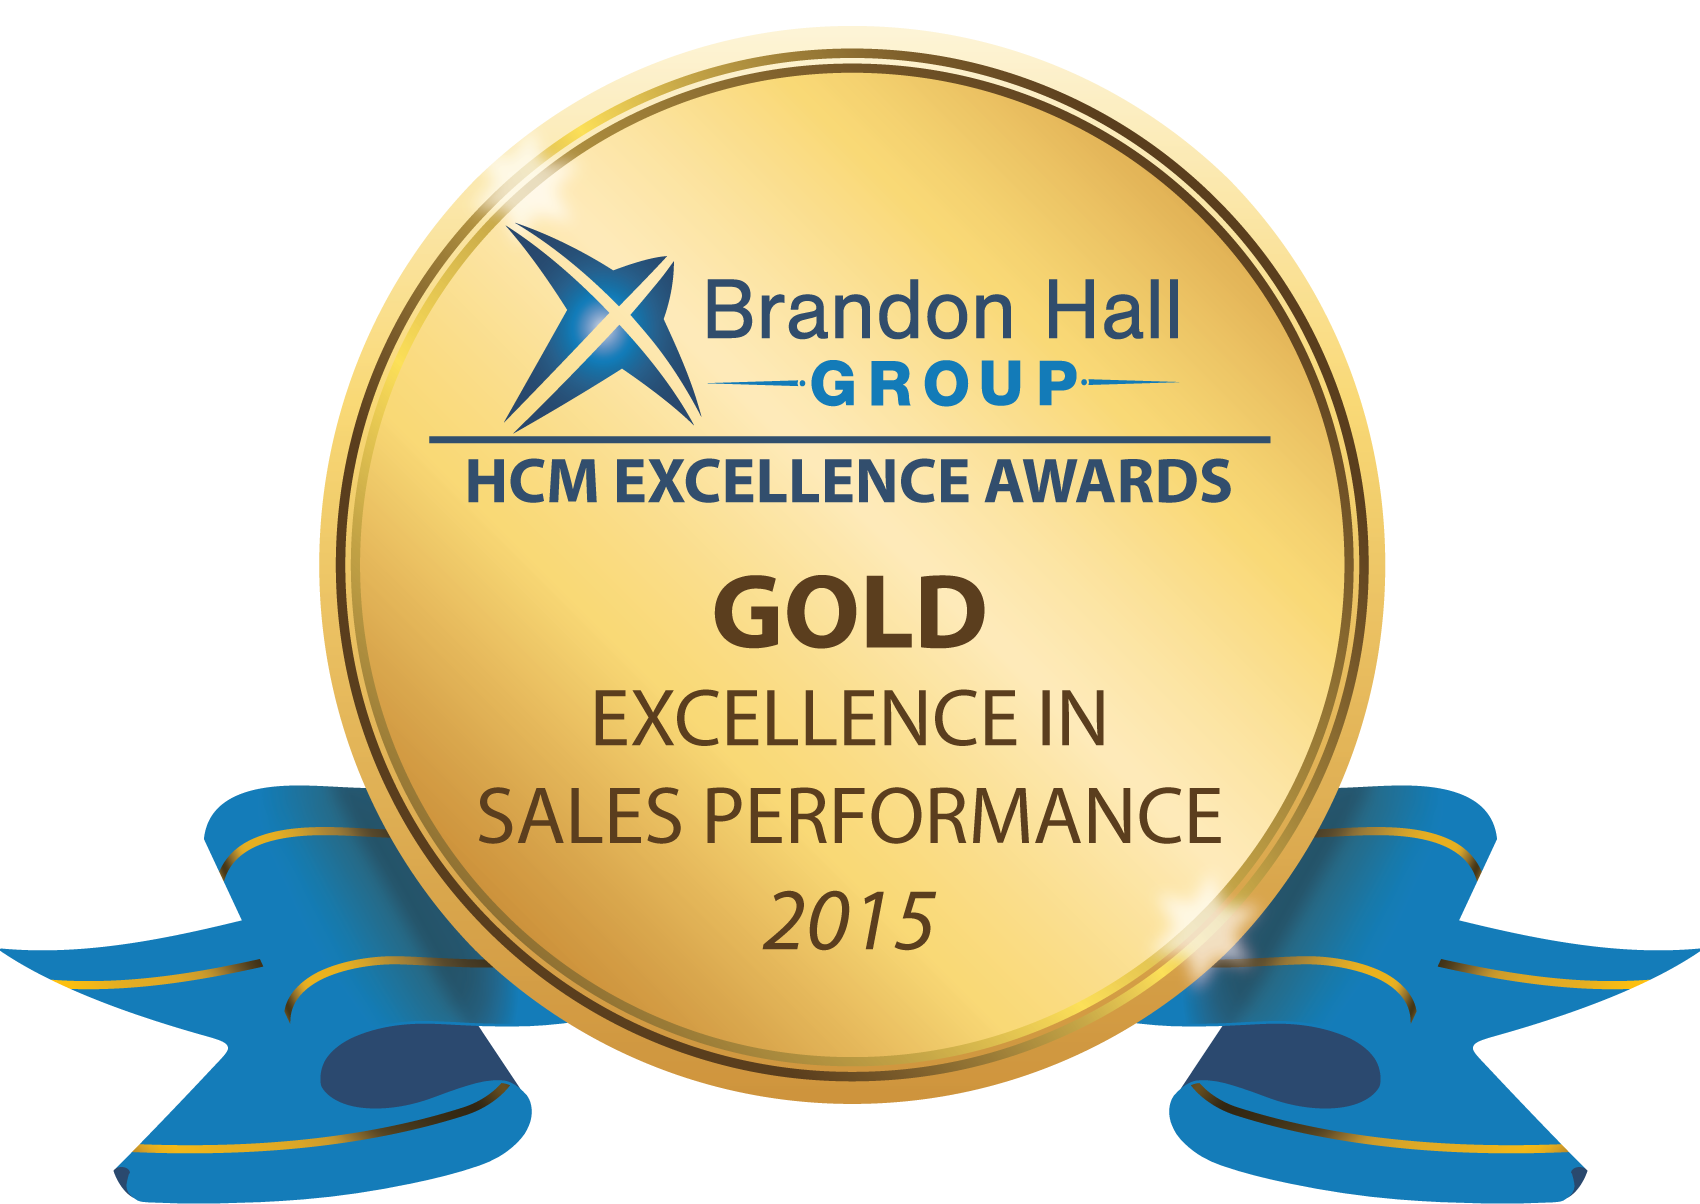 We've won THREE Brandon Hall Excellence Awards!